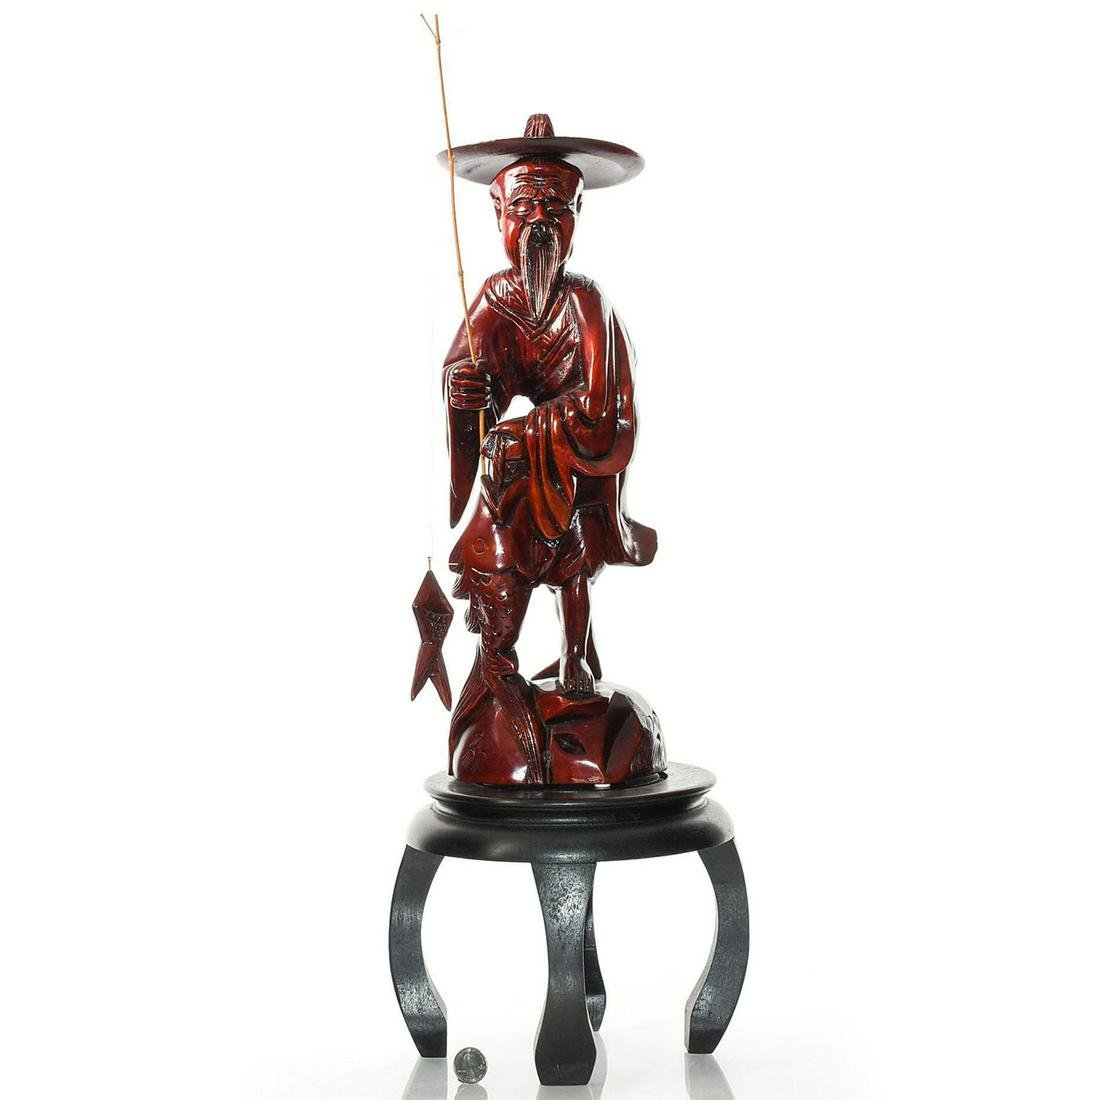 HAND CARVED CHERRYWOOD CHINESE FISHERMAN STATUE & BASE